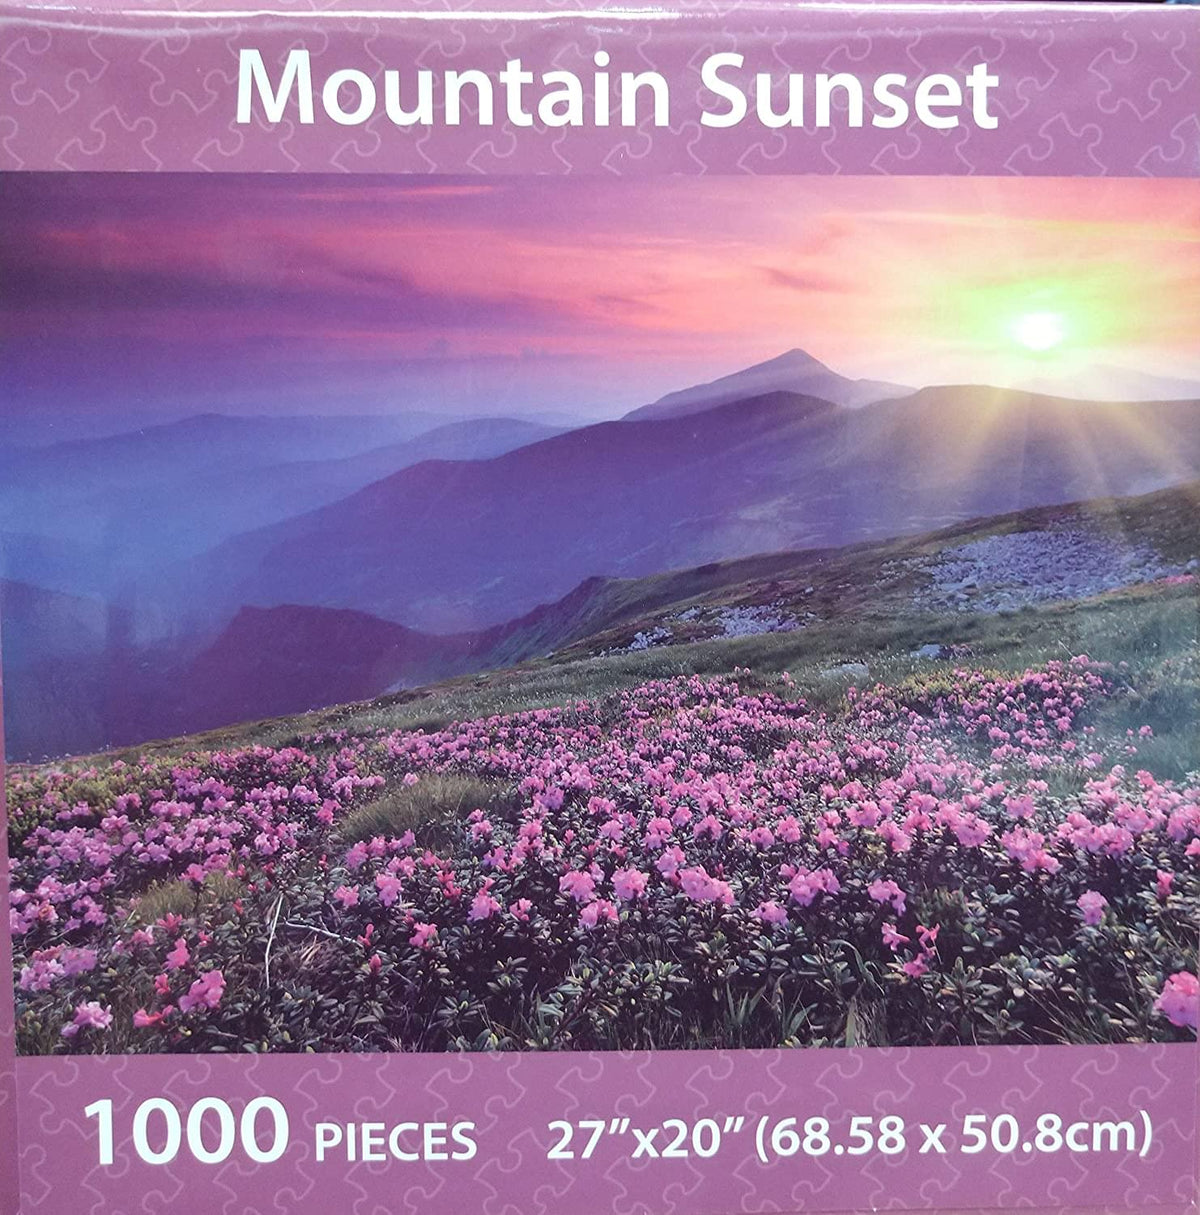 Sunset 1000 Piece Landscape Jigsaw Puzzle